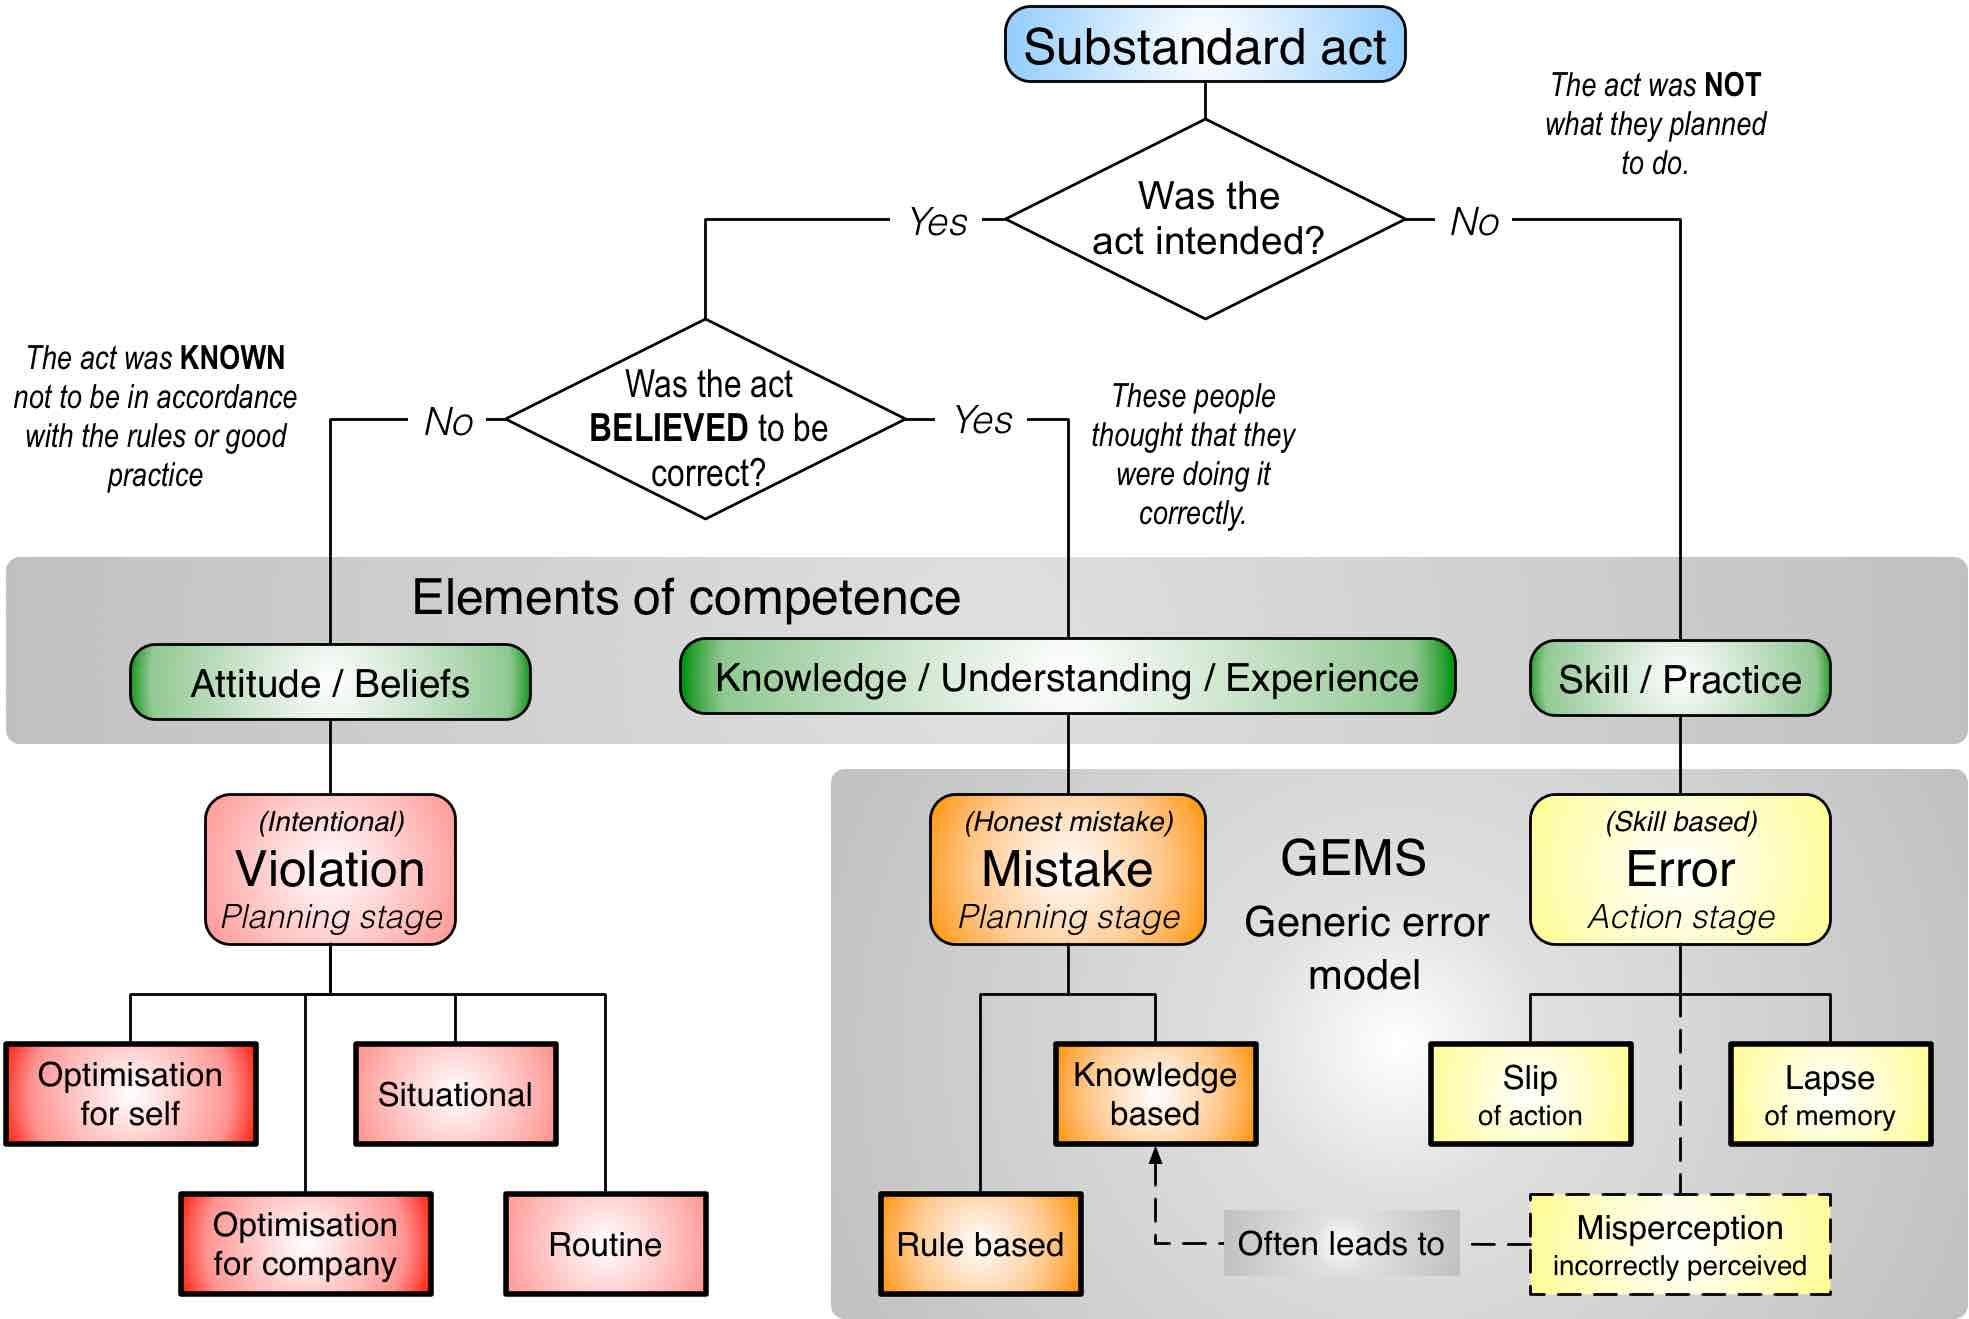 generic error modeling system Essays - largest database of quality sample essays and research papers on generic error modeling system.